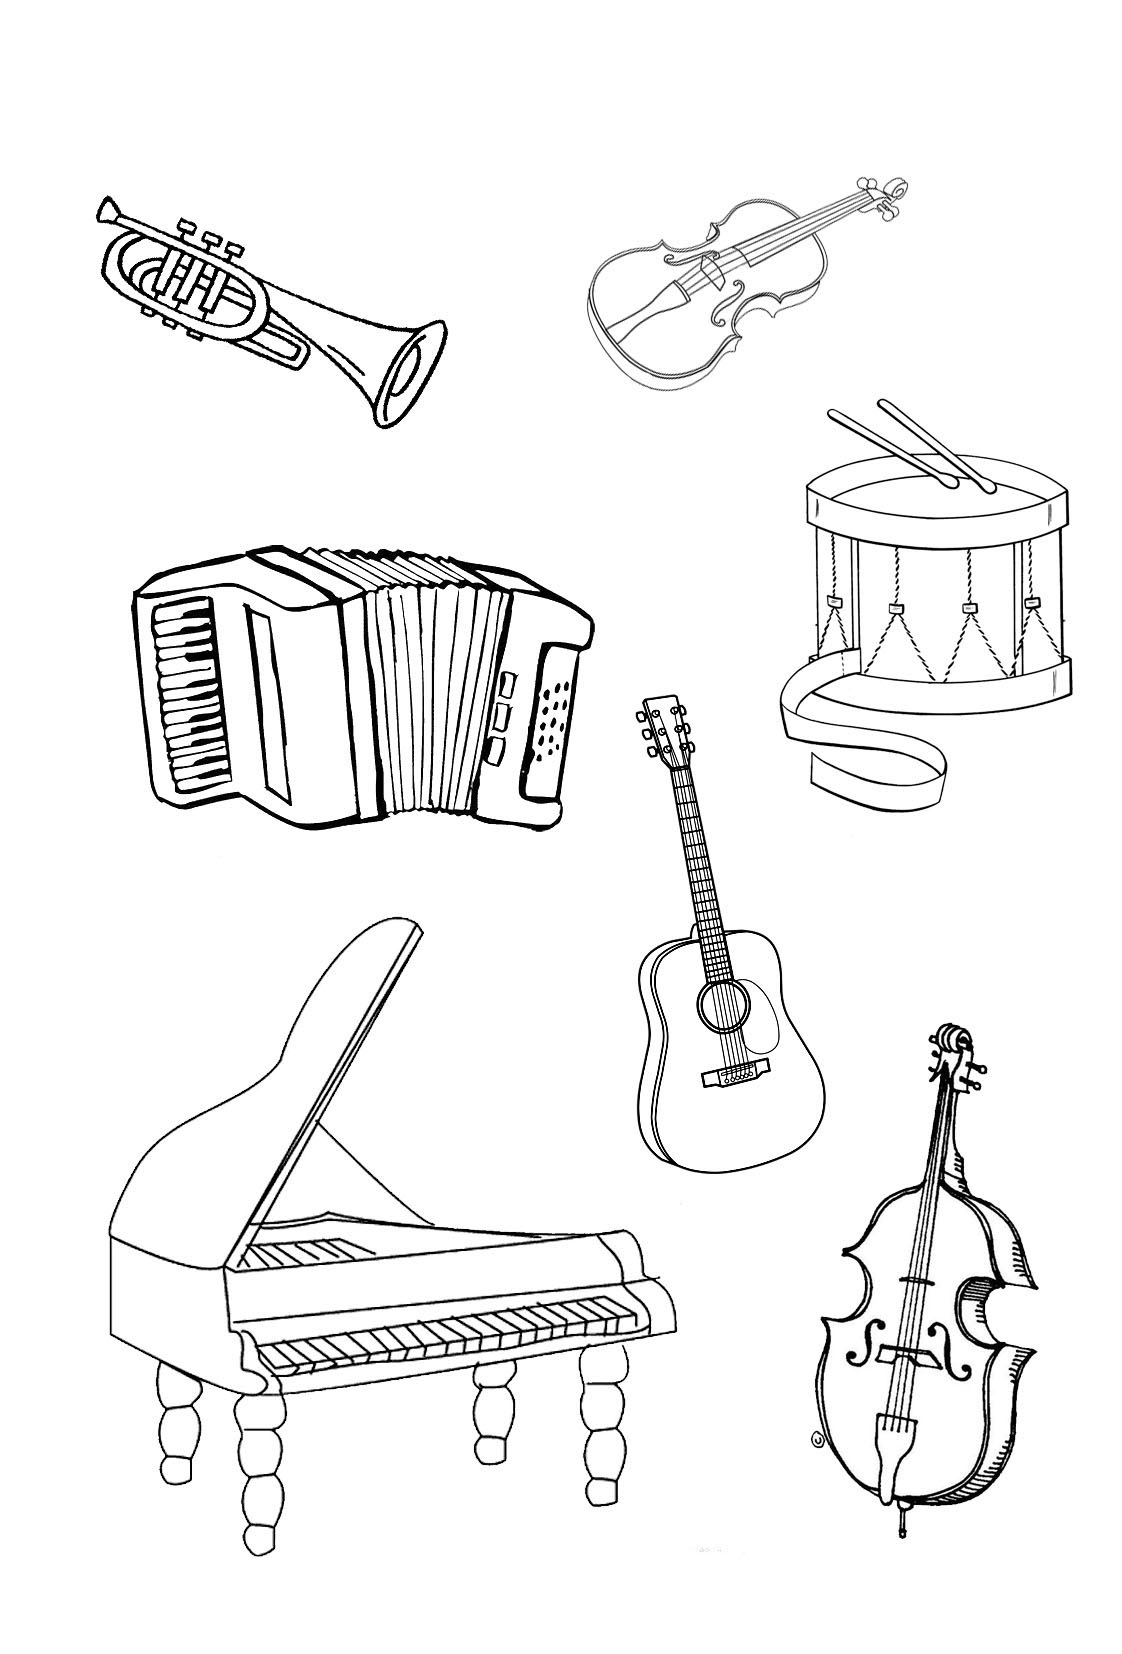 free printable coloring pages of musical instruments gutair colouring pages printable colouring pictures of coloring pages free musical printable instruments of